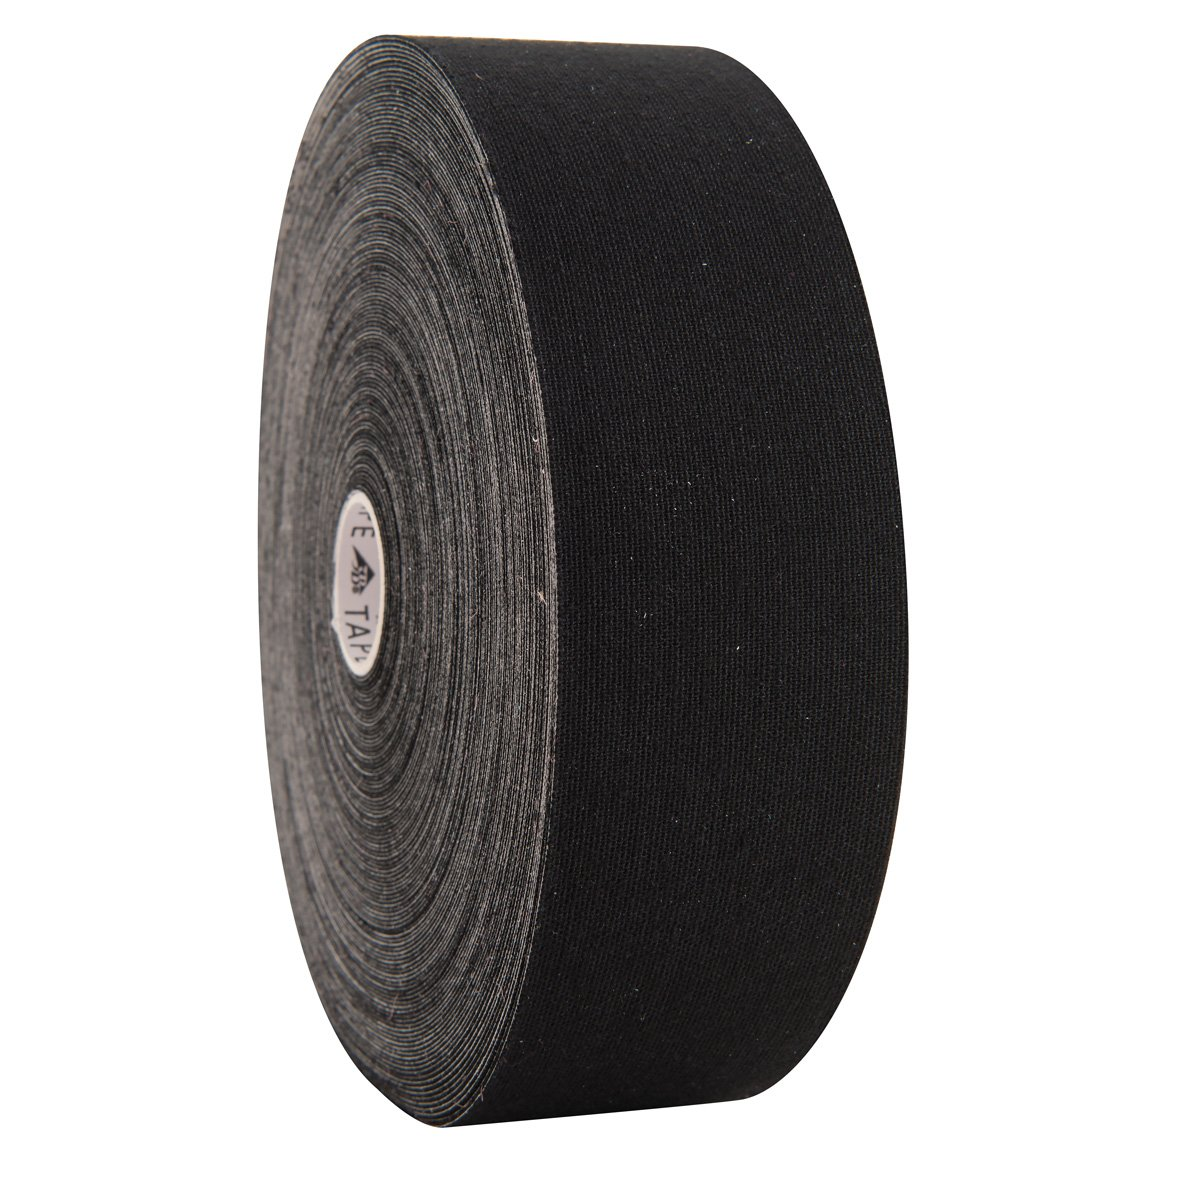 3B Scientific Black Cotton Kinesiology Tape, Bulk Roll, 2'' Width x 103' Length